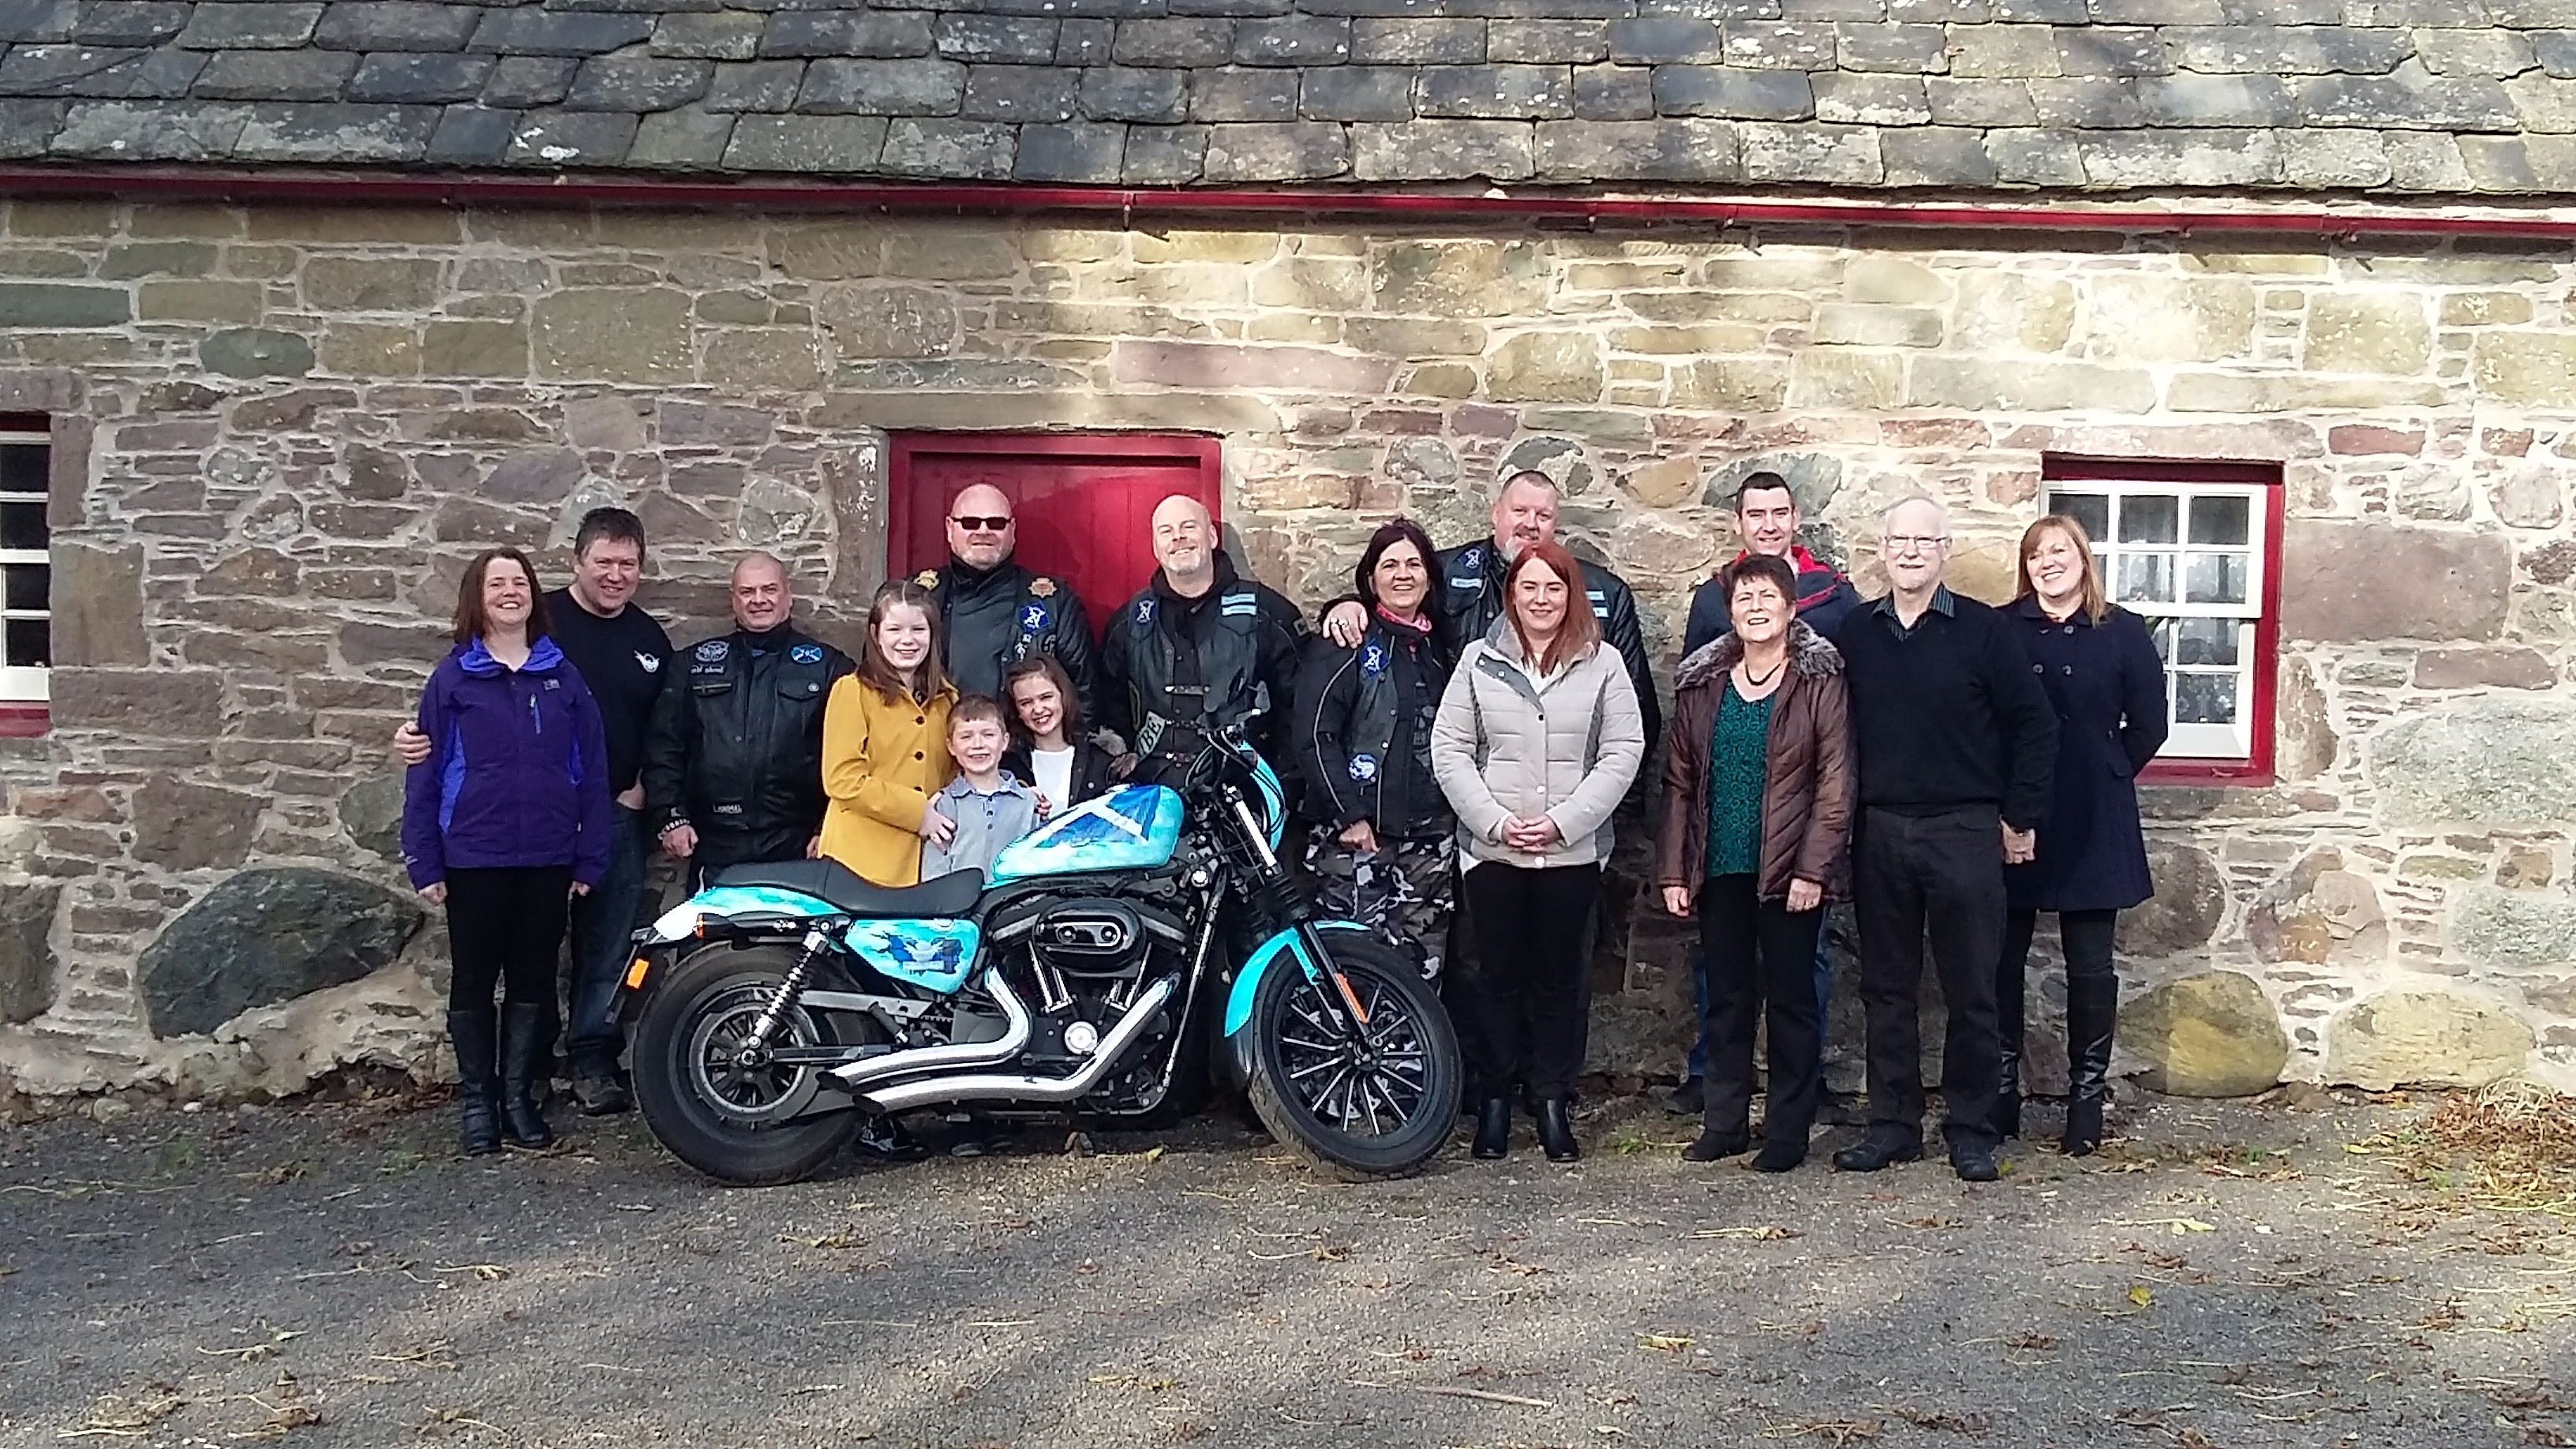 The memorial gathering at Davidson Cottage with the special bike